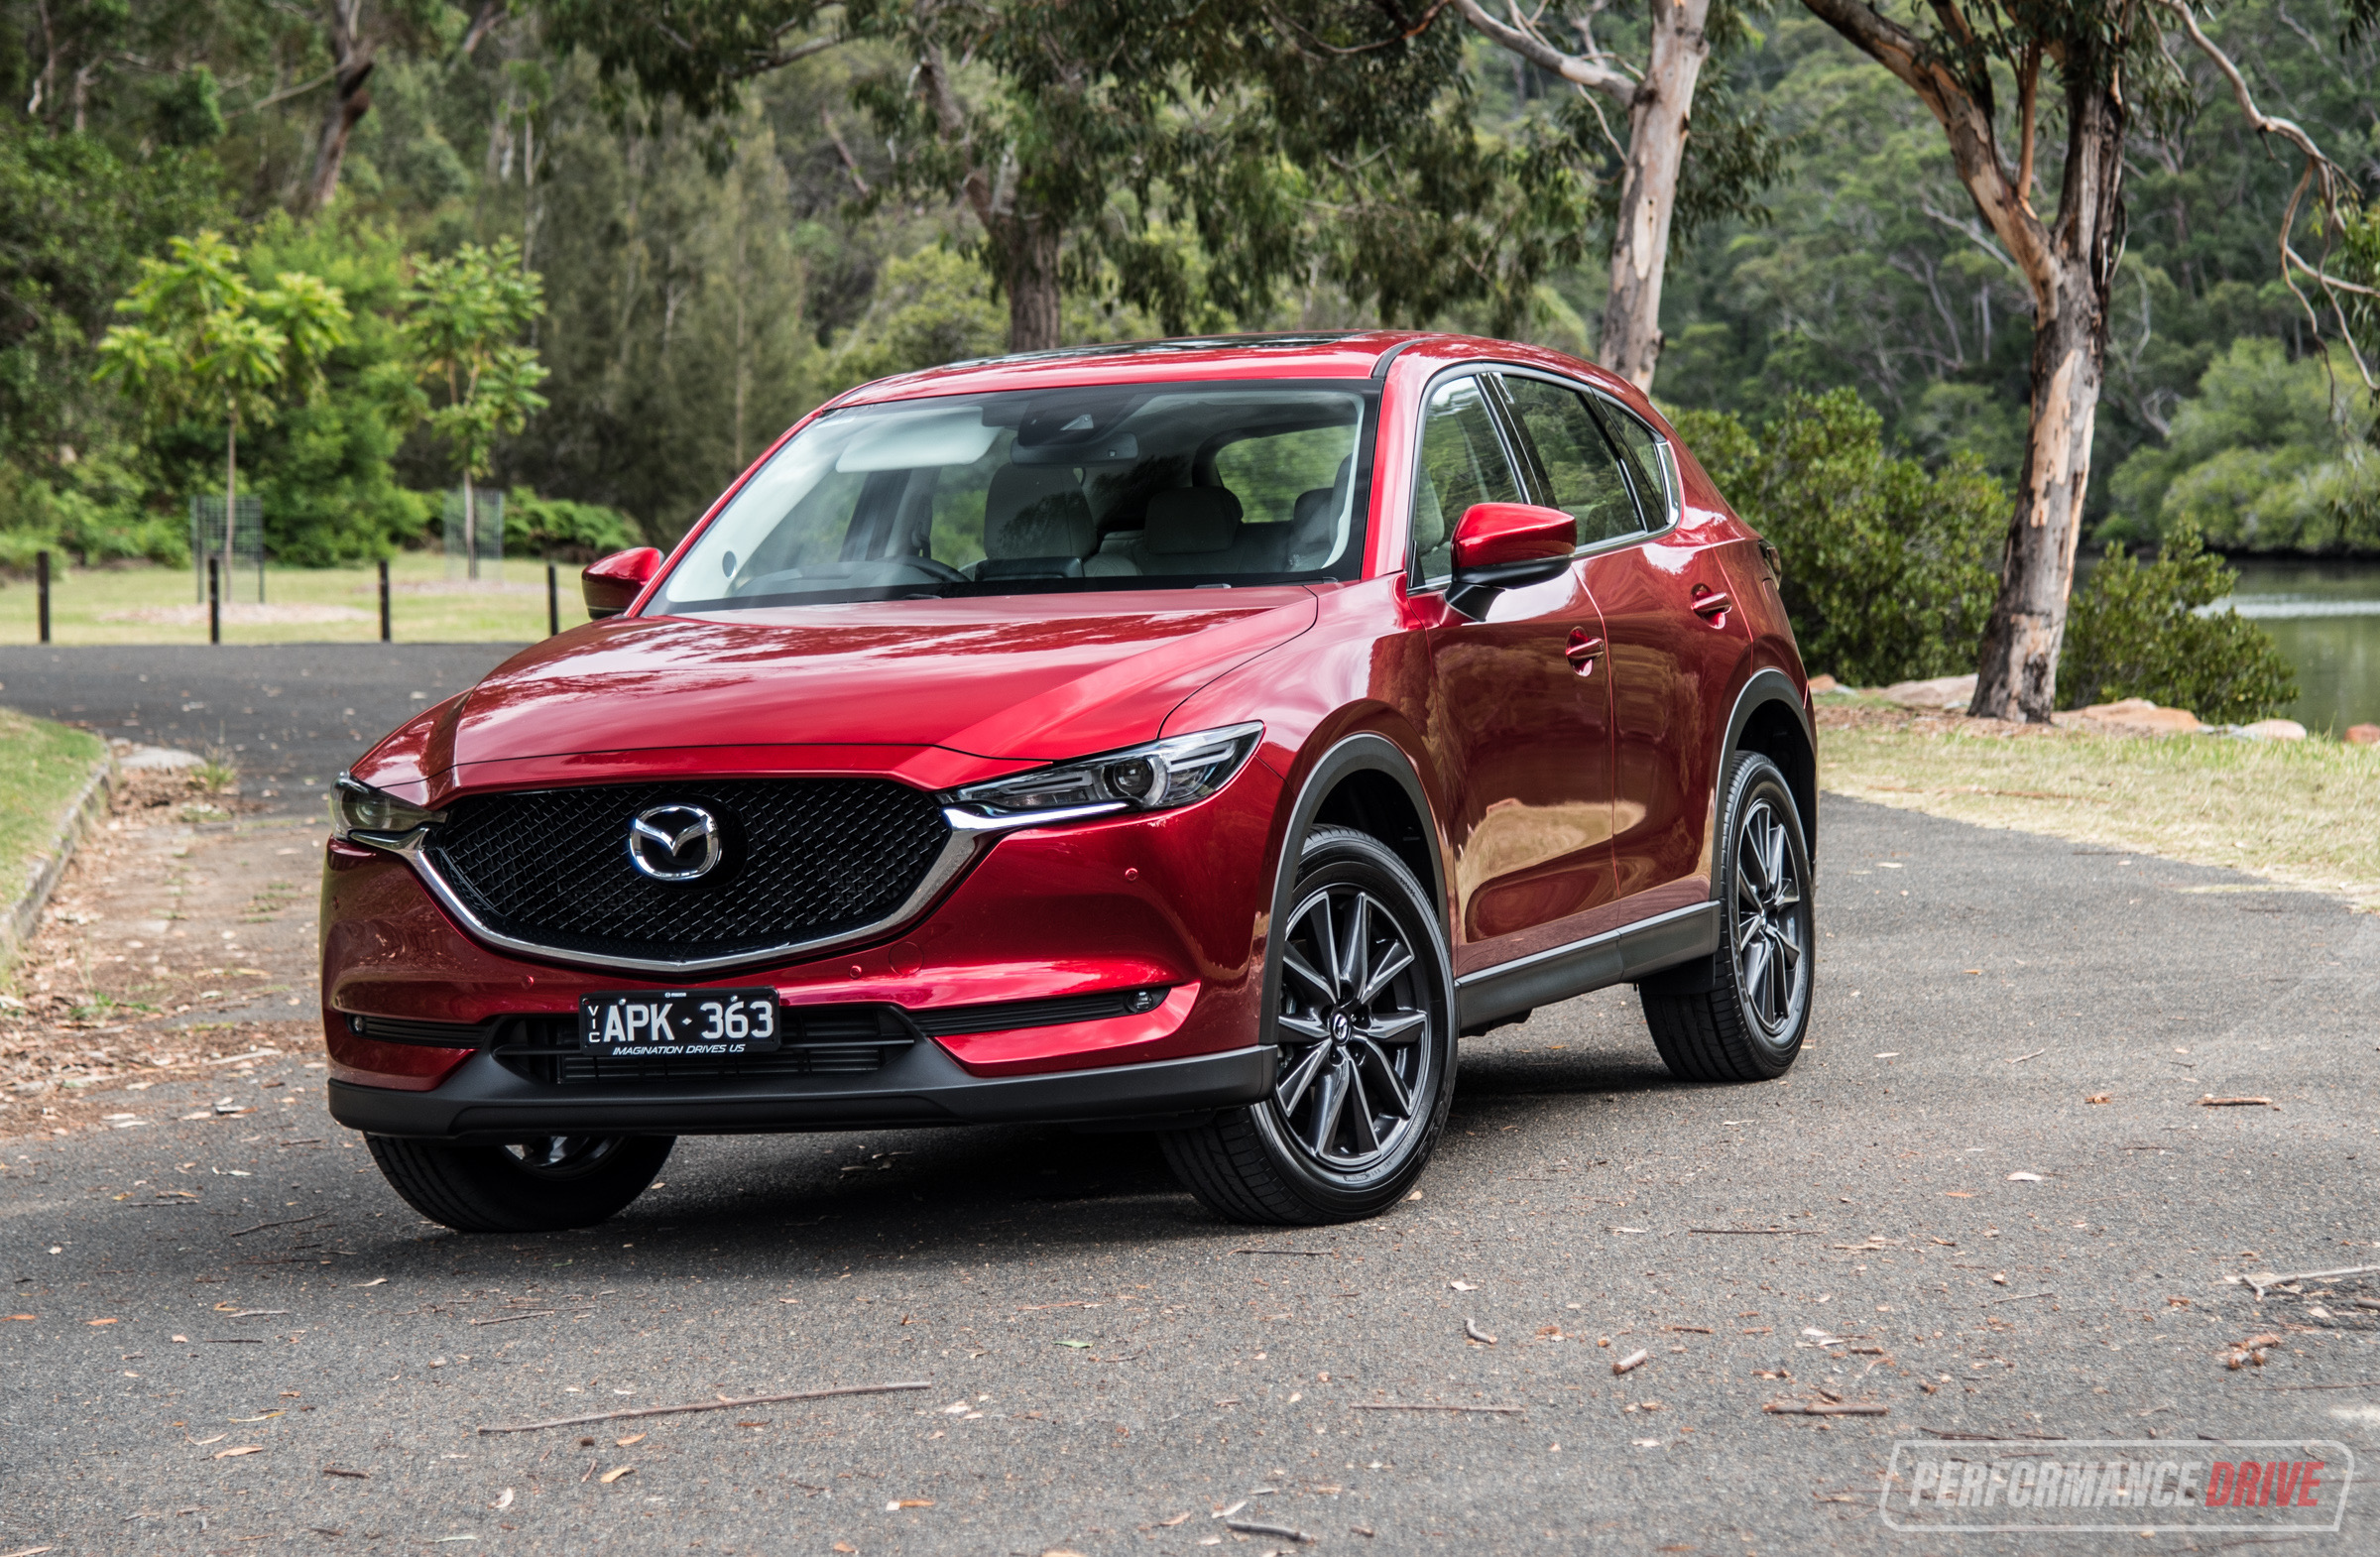 2018 mazda cx 5 diesel everything you need to know pov review performancedrive. Black Bedroom Furniture Sets. Home Design Ideas